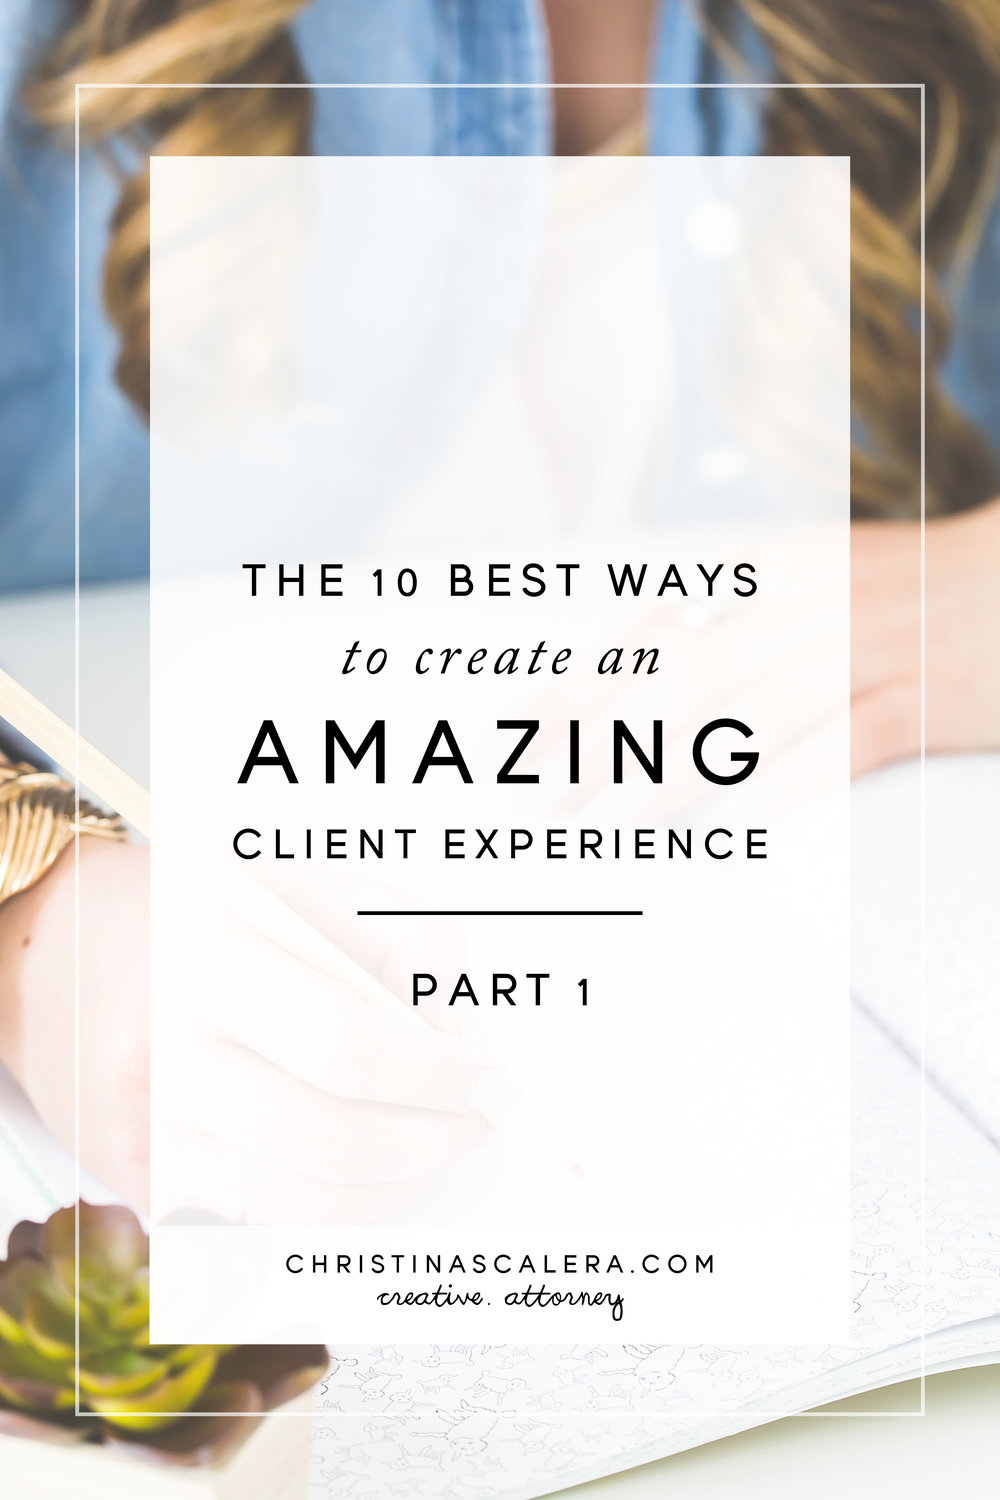 The BEST ways to create an amazing client experience, part 1!